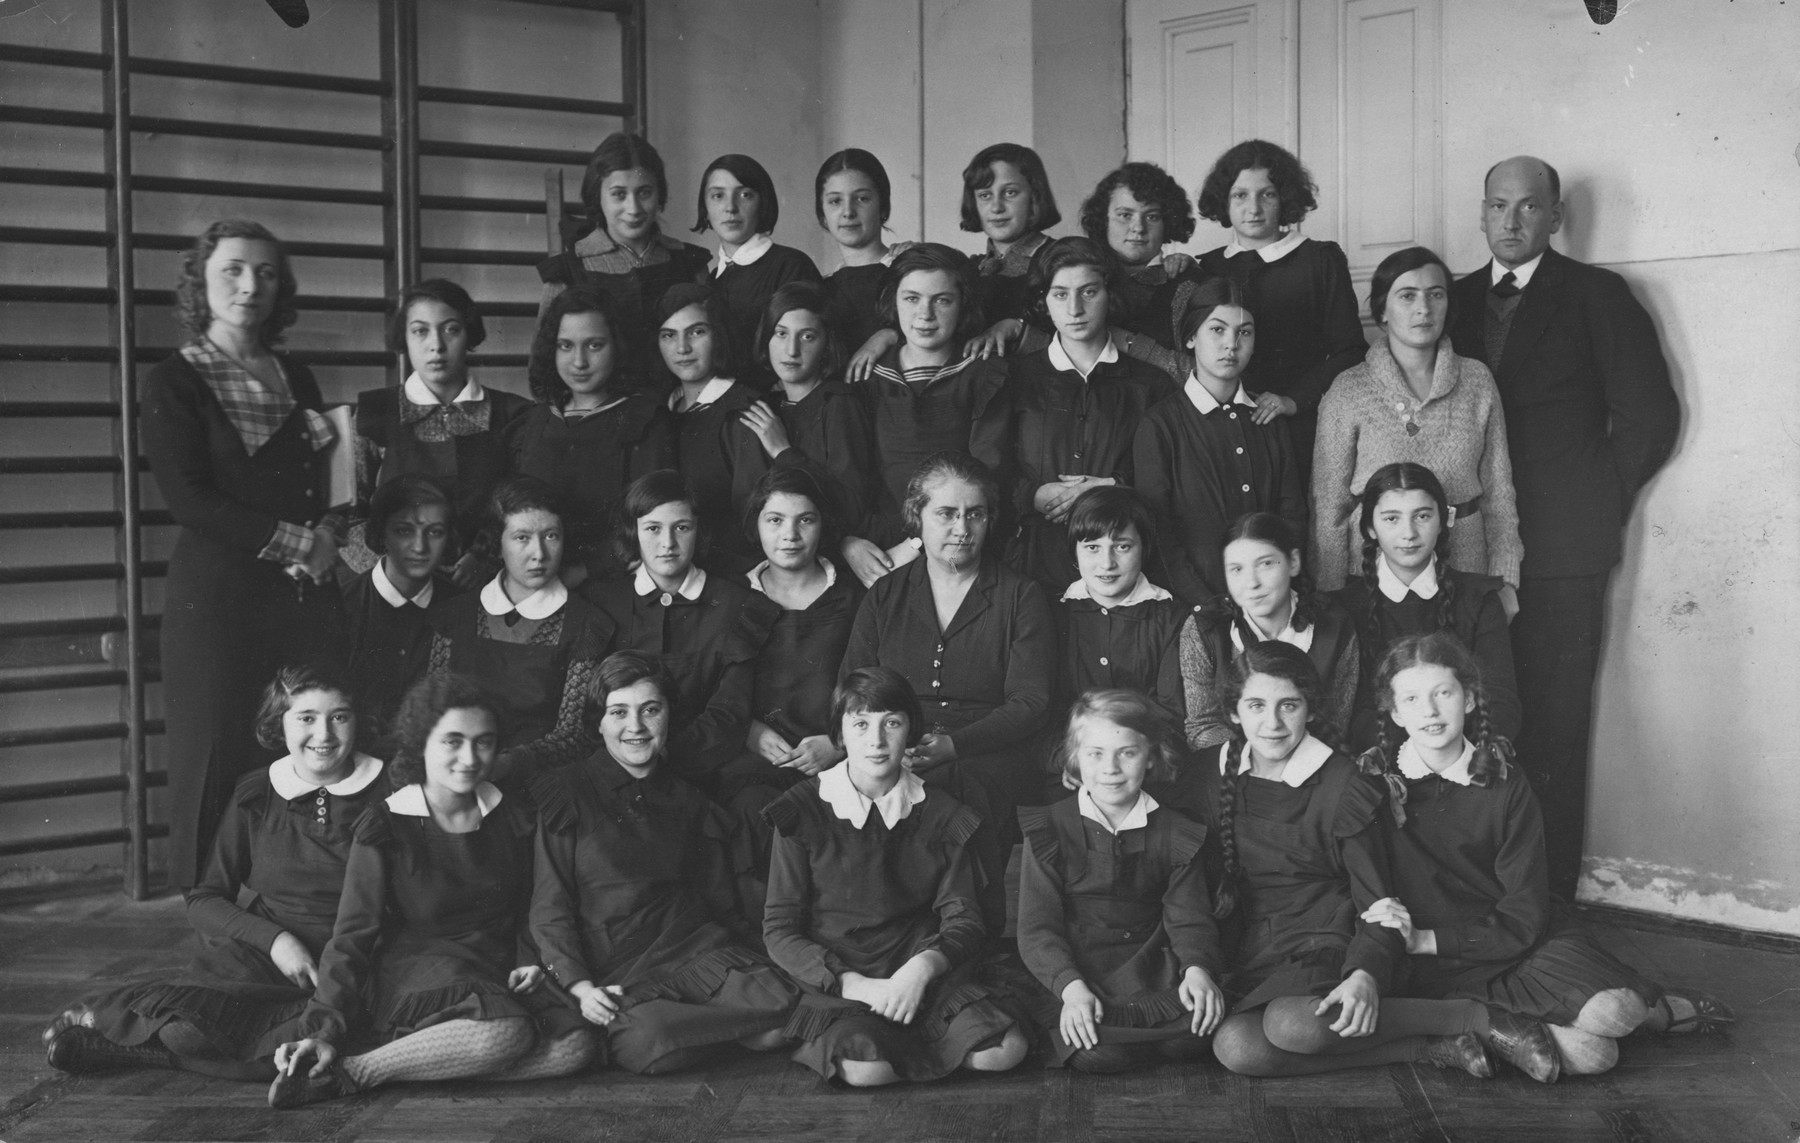 Group portrait of students attending the Yehudiah Jewish gymnasium for girls in Warsaw.